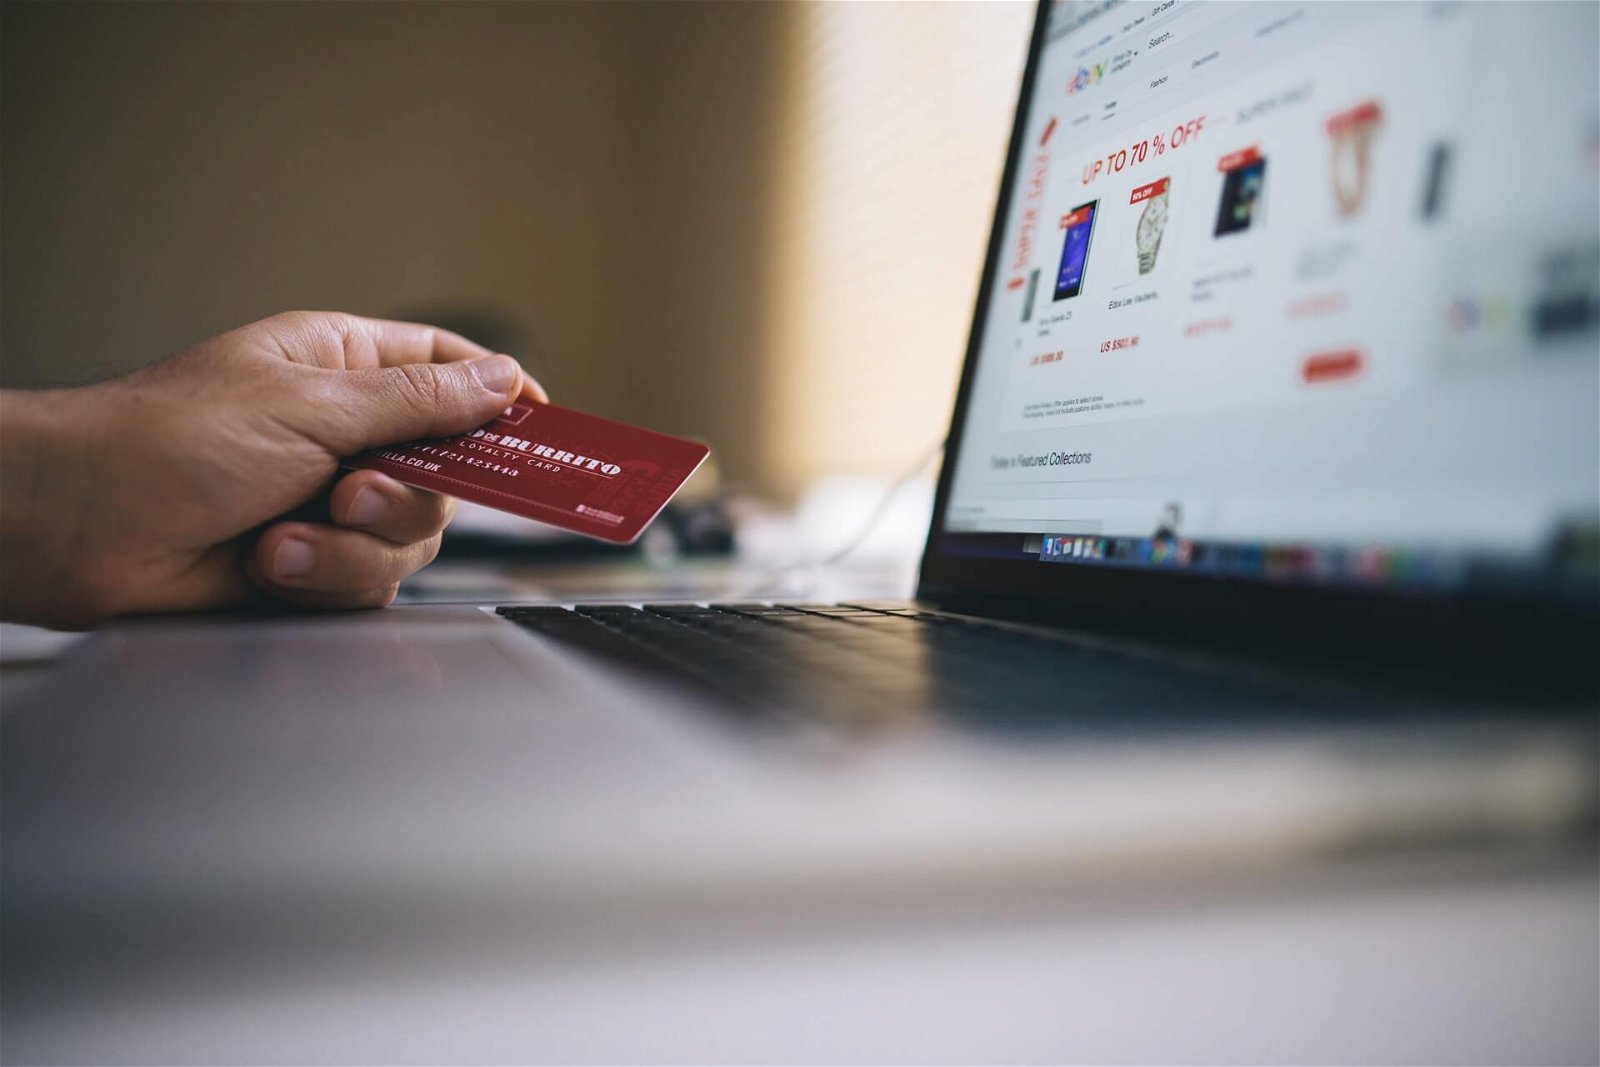 WooCommerce Security: 5 Simple Ways to Secure Your Online Shop